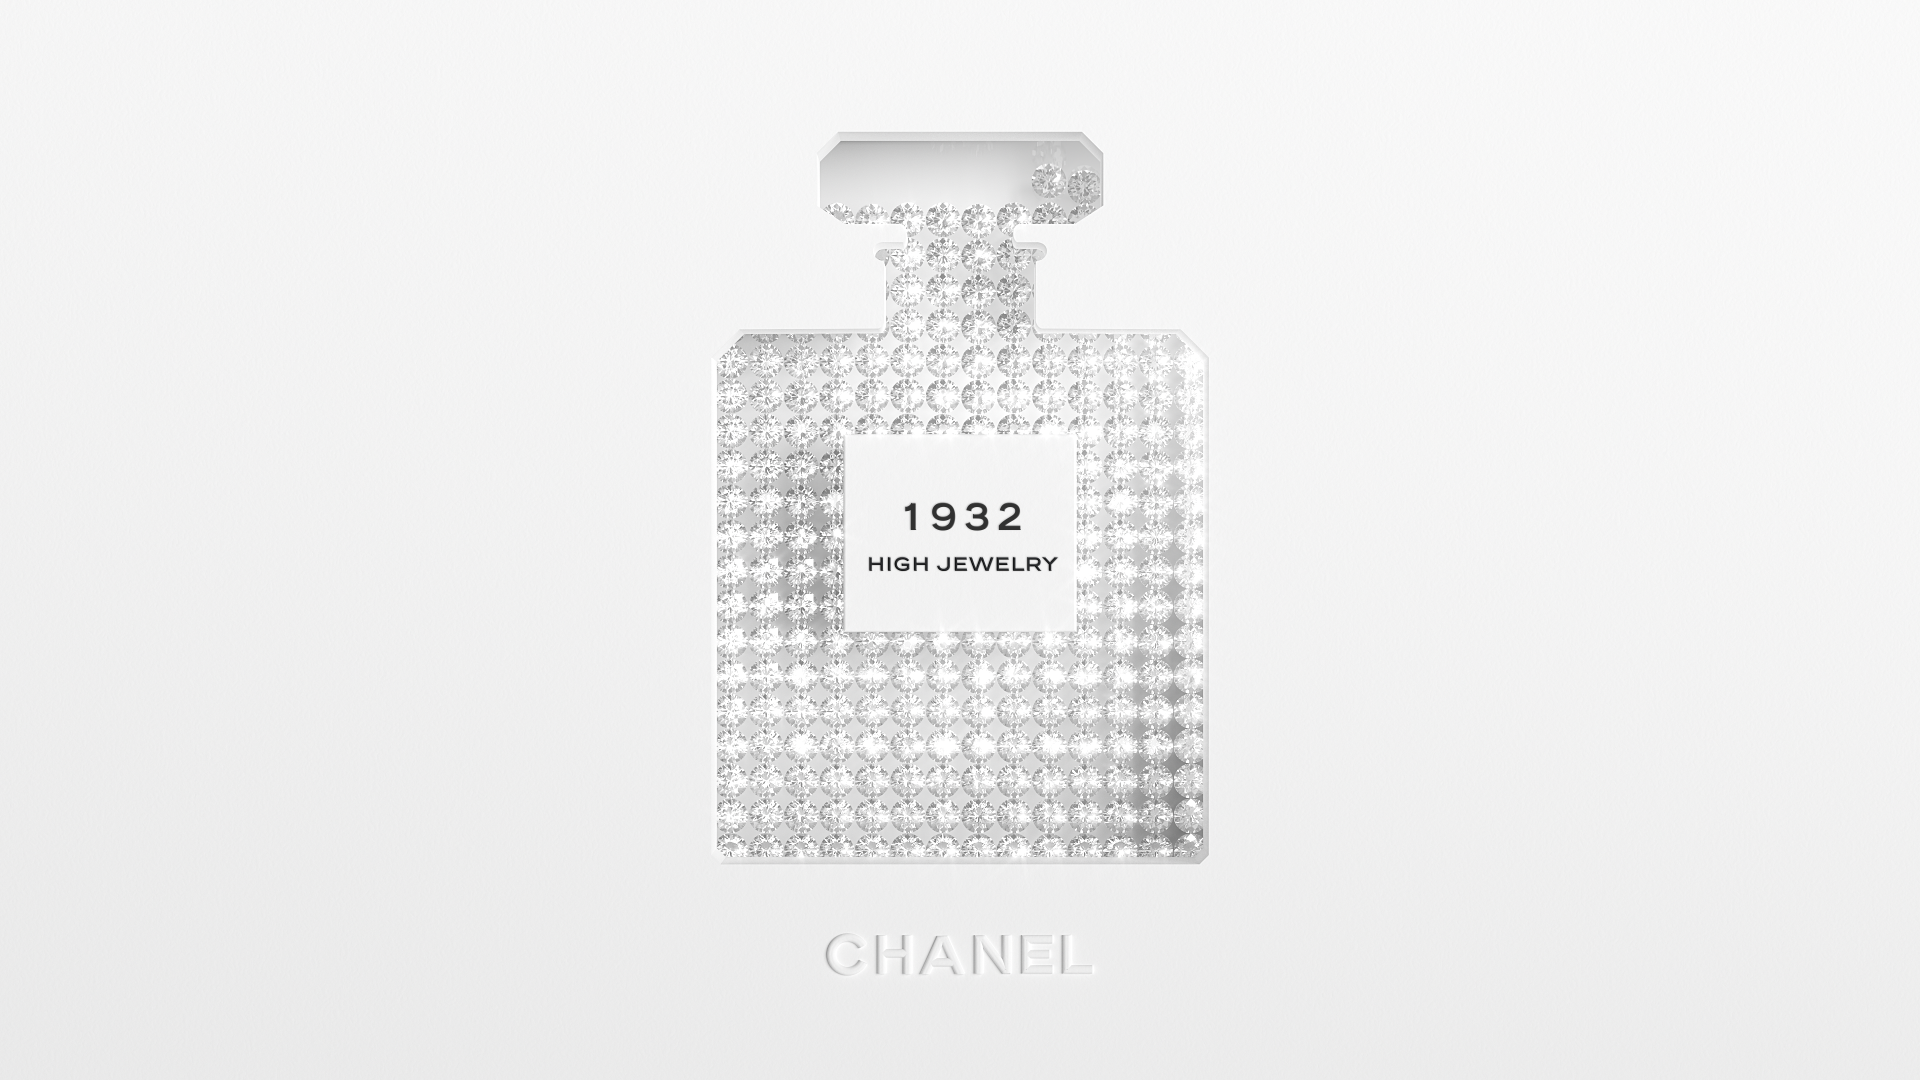 BC1015 Chanel - Best Wishes_16-9_00377.png